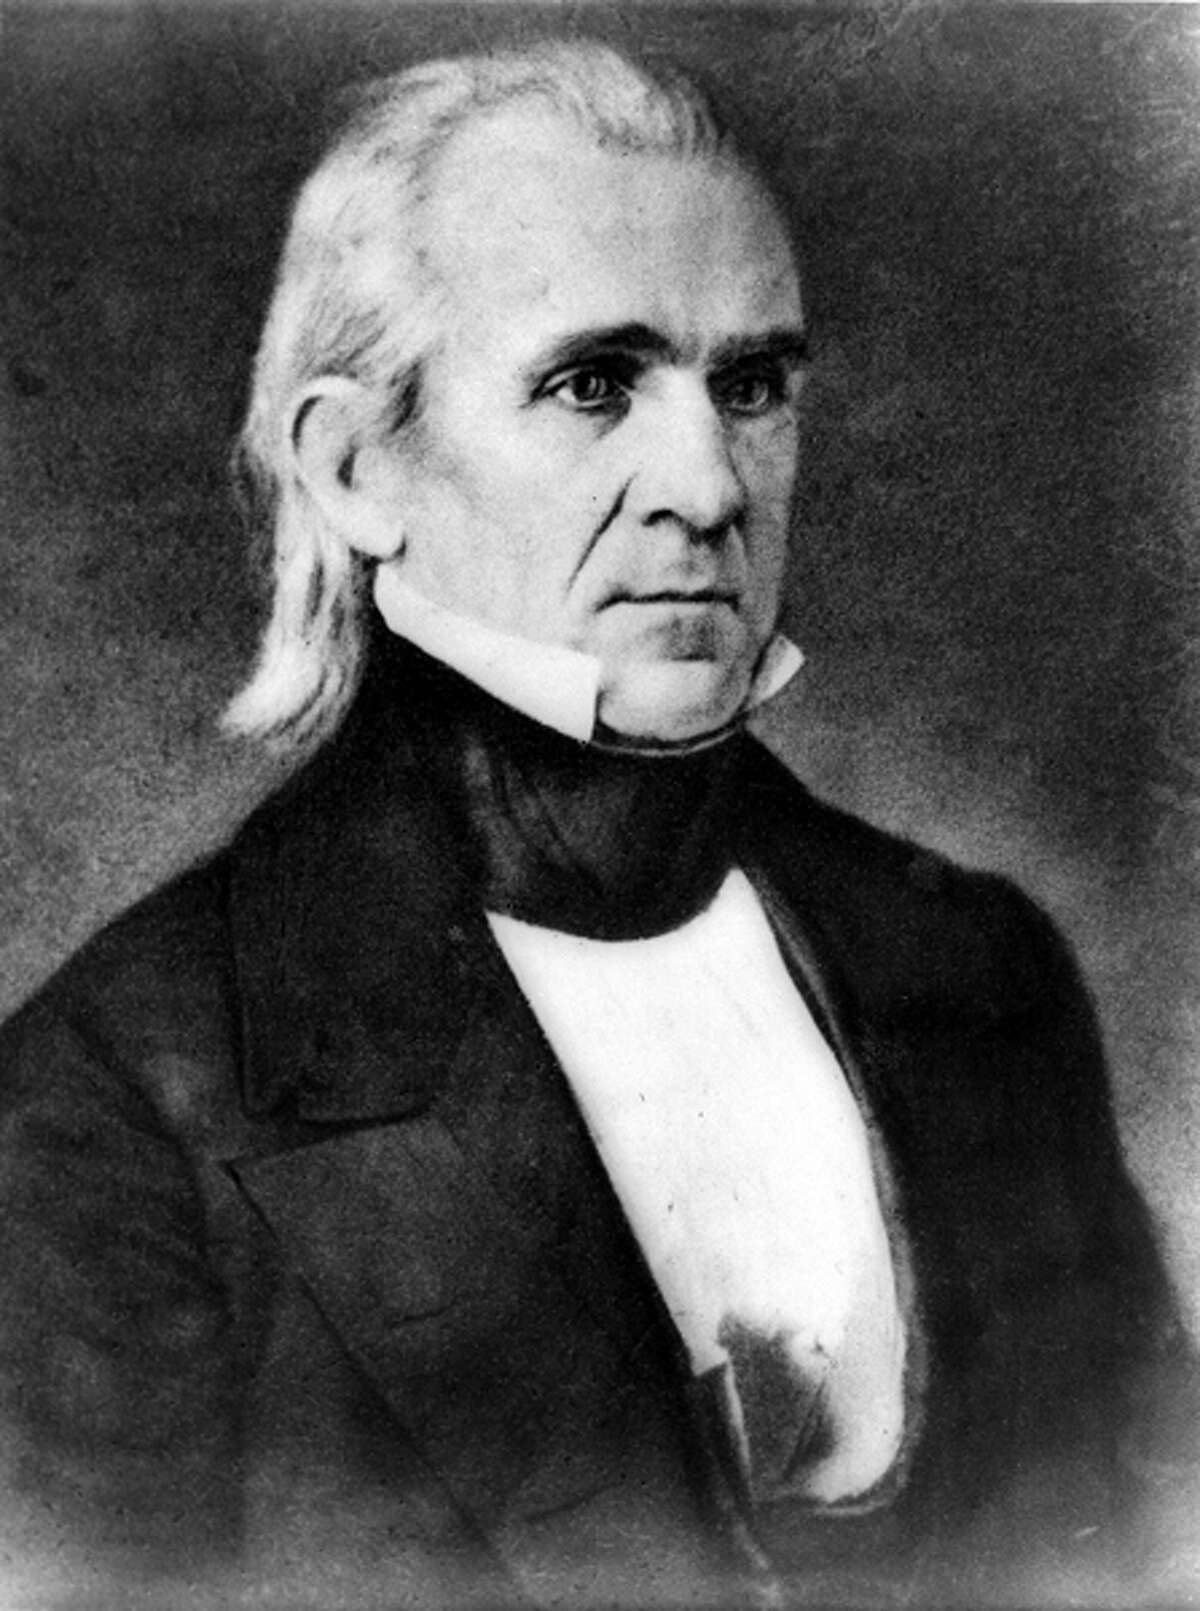 1845: U.S. President James Polk signs the act admitting Texas as a state. It was the first time a sovereign nation voluntarily gave up its sovereignty to become part of another nation (the opposite of secession).